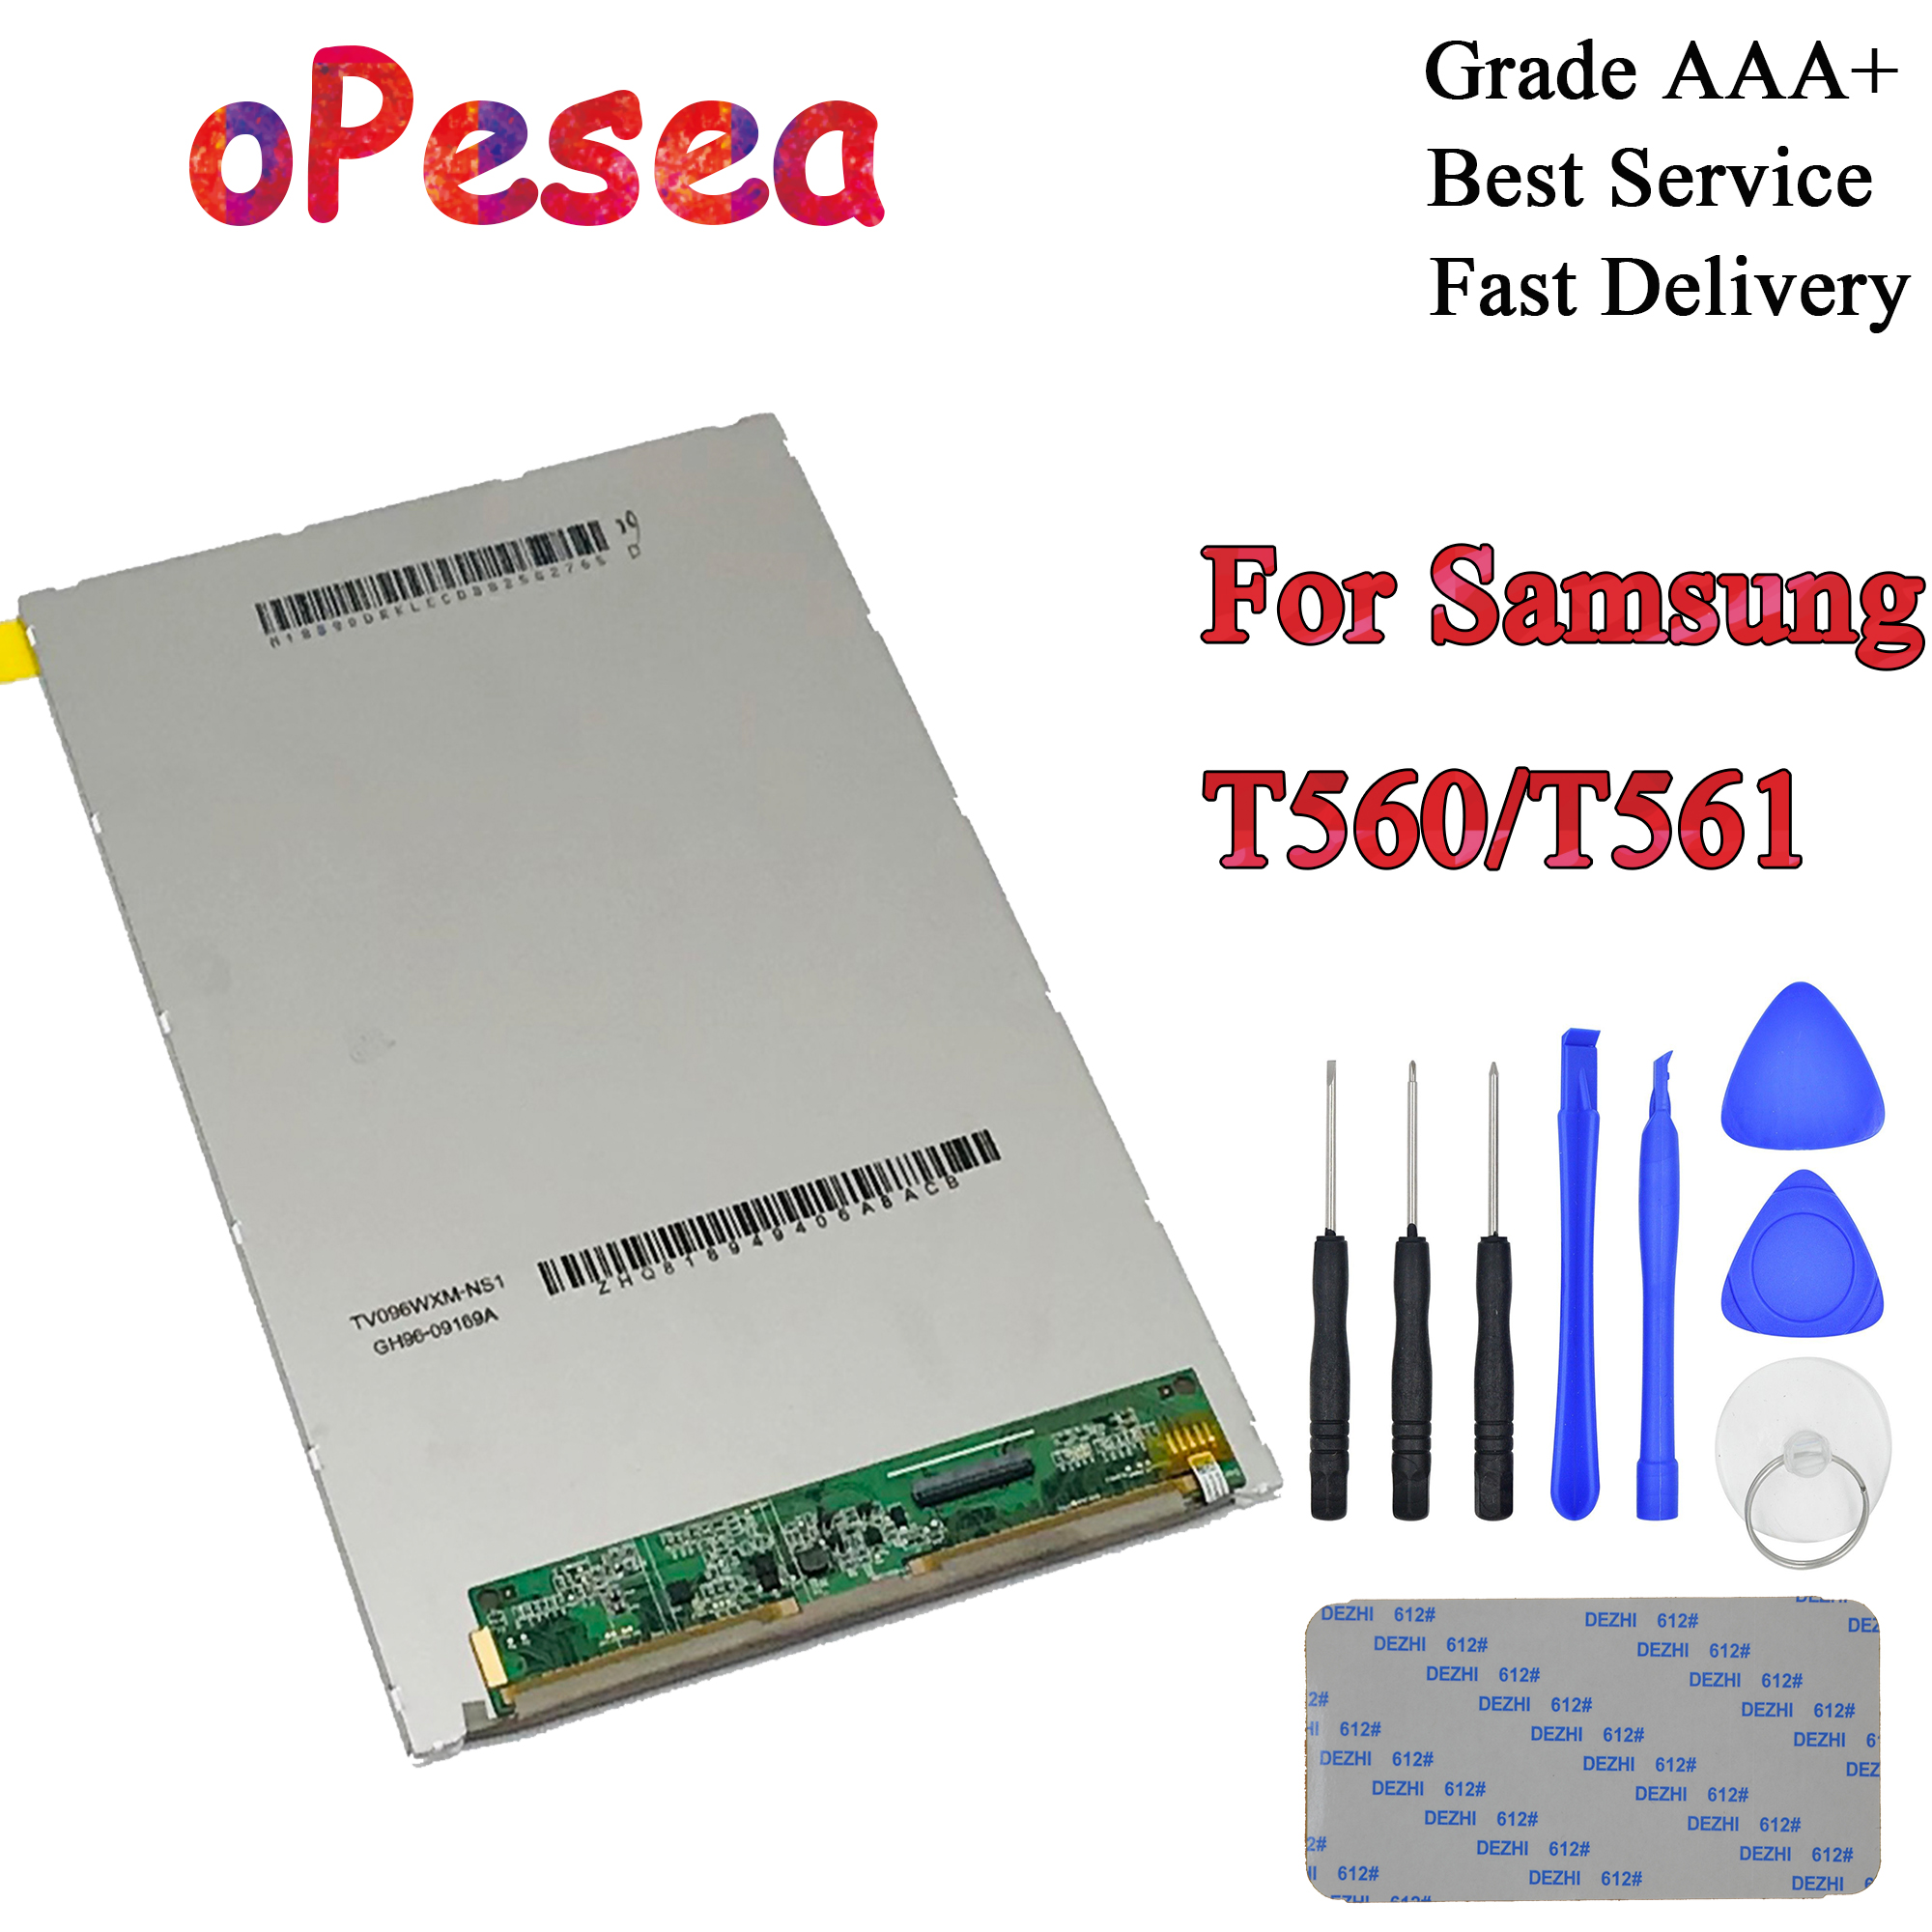 OPesea For Samsung Galaxy Tab E 9.6 T560 T561 SM-T560 SM-T561 LCD Display Panel Screen Monitor Replacement Parts